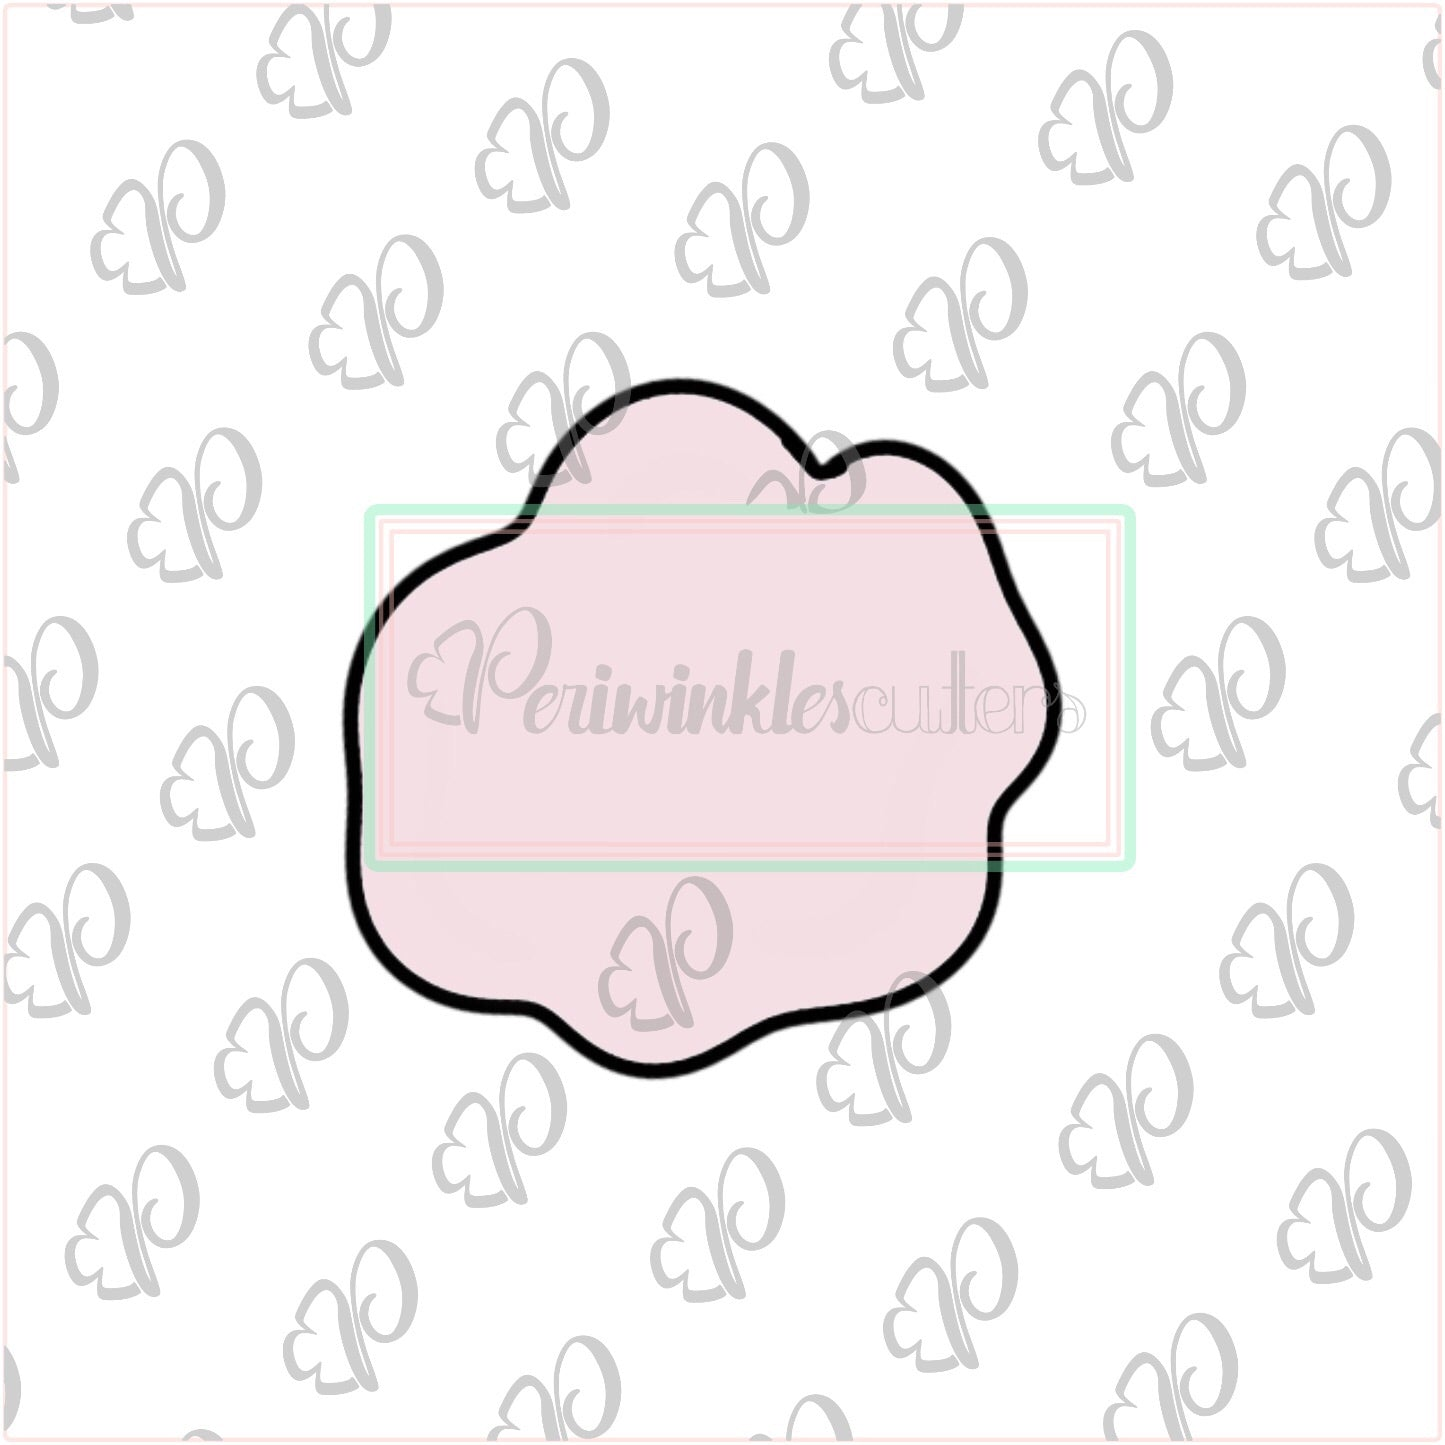 Puffy Bunny Tail Cookie Cutter - Periwinkles Cutters LLC